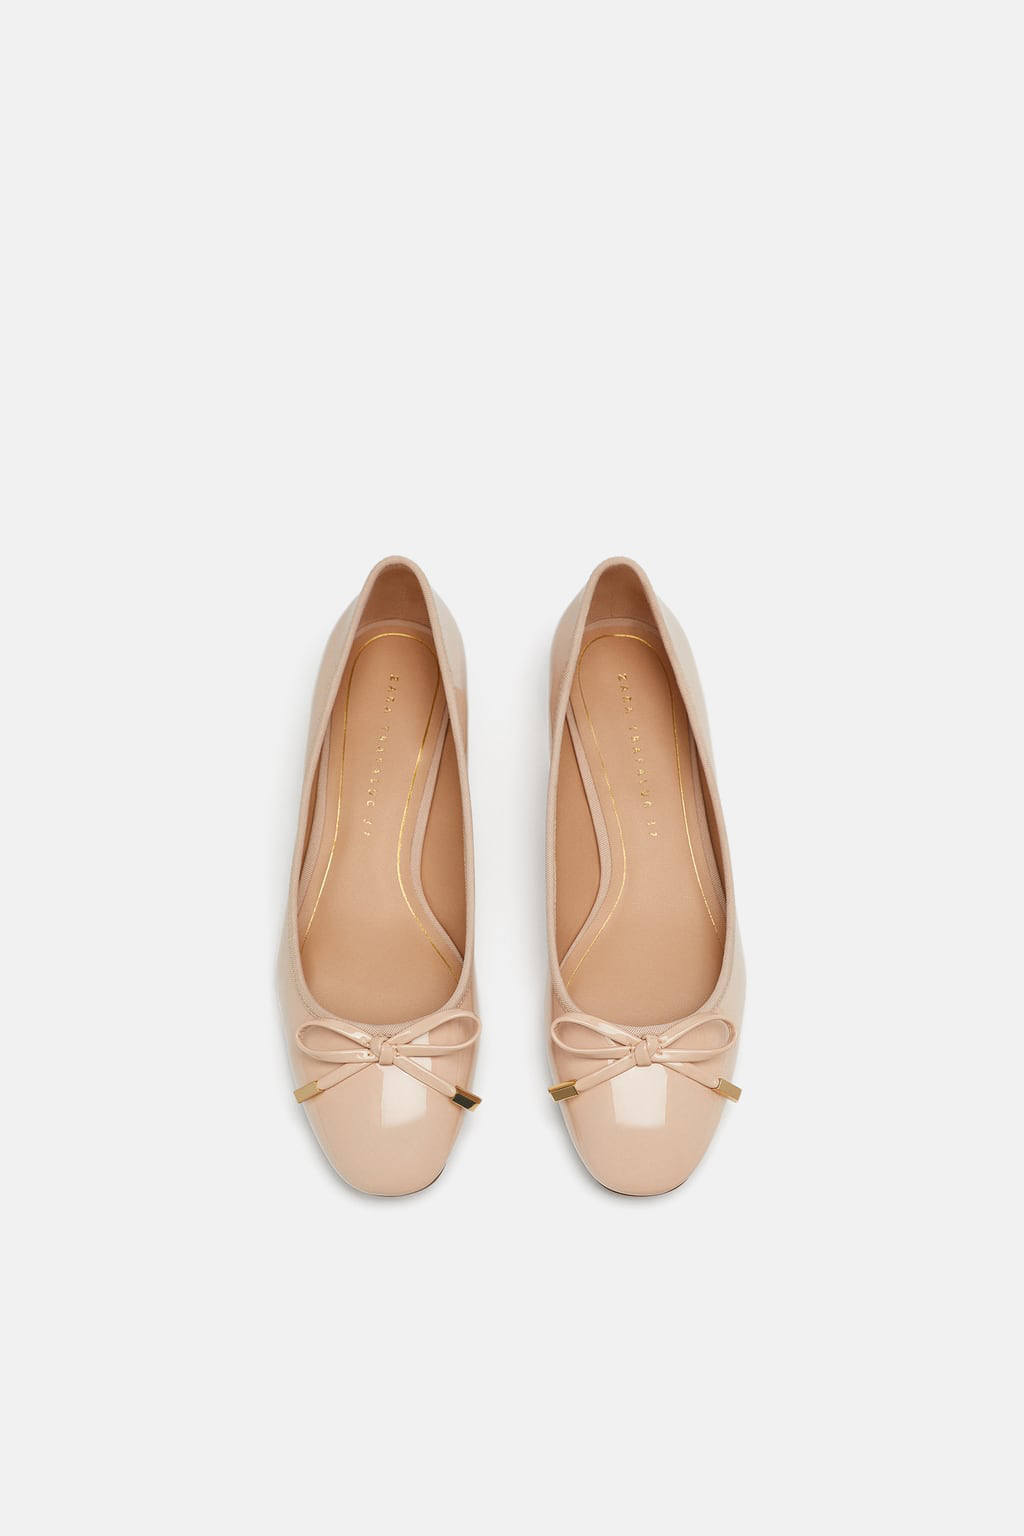 nude shoes heeled ballerinas with bow